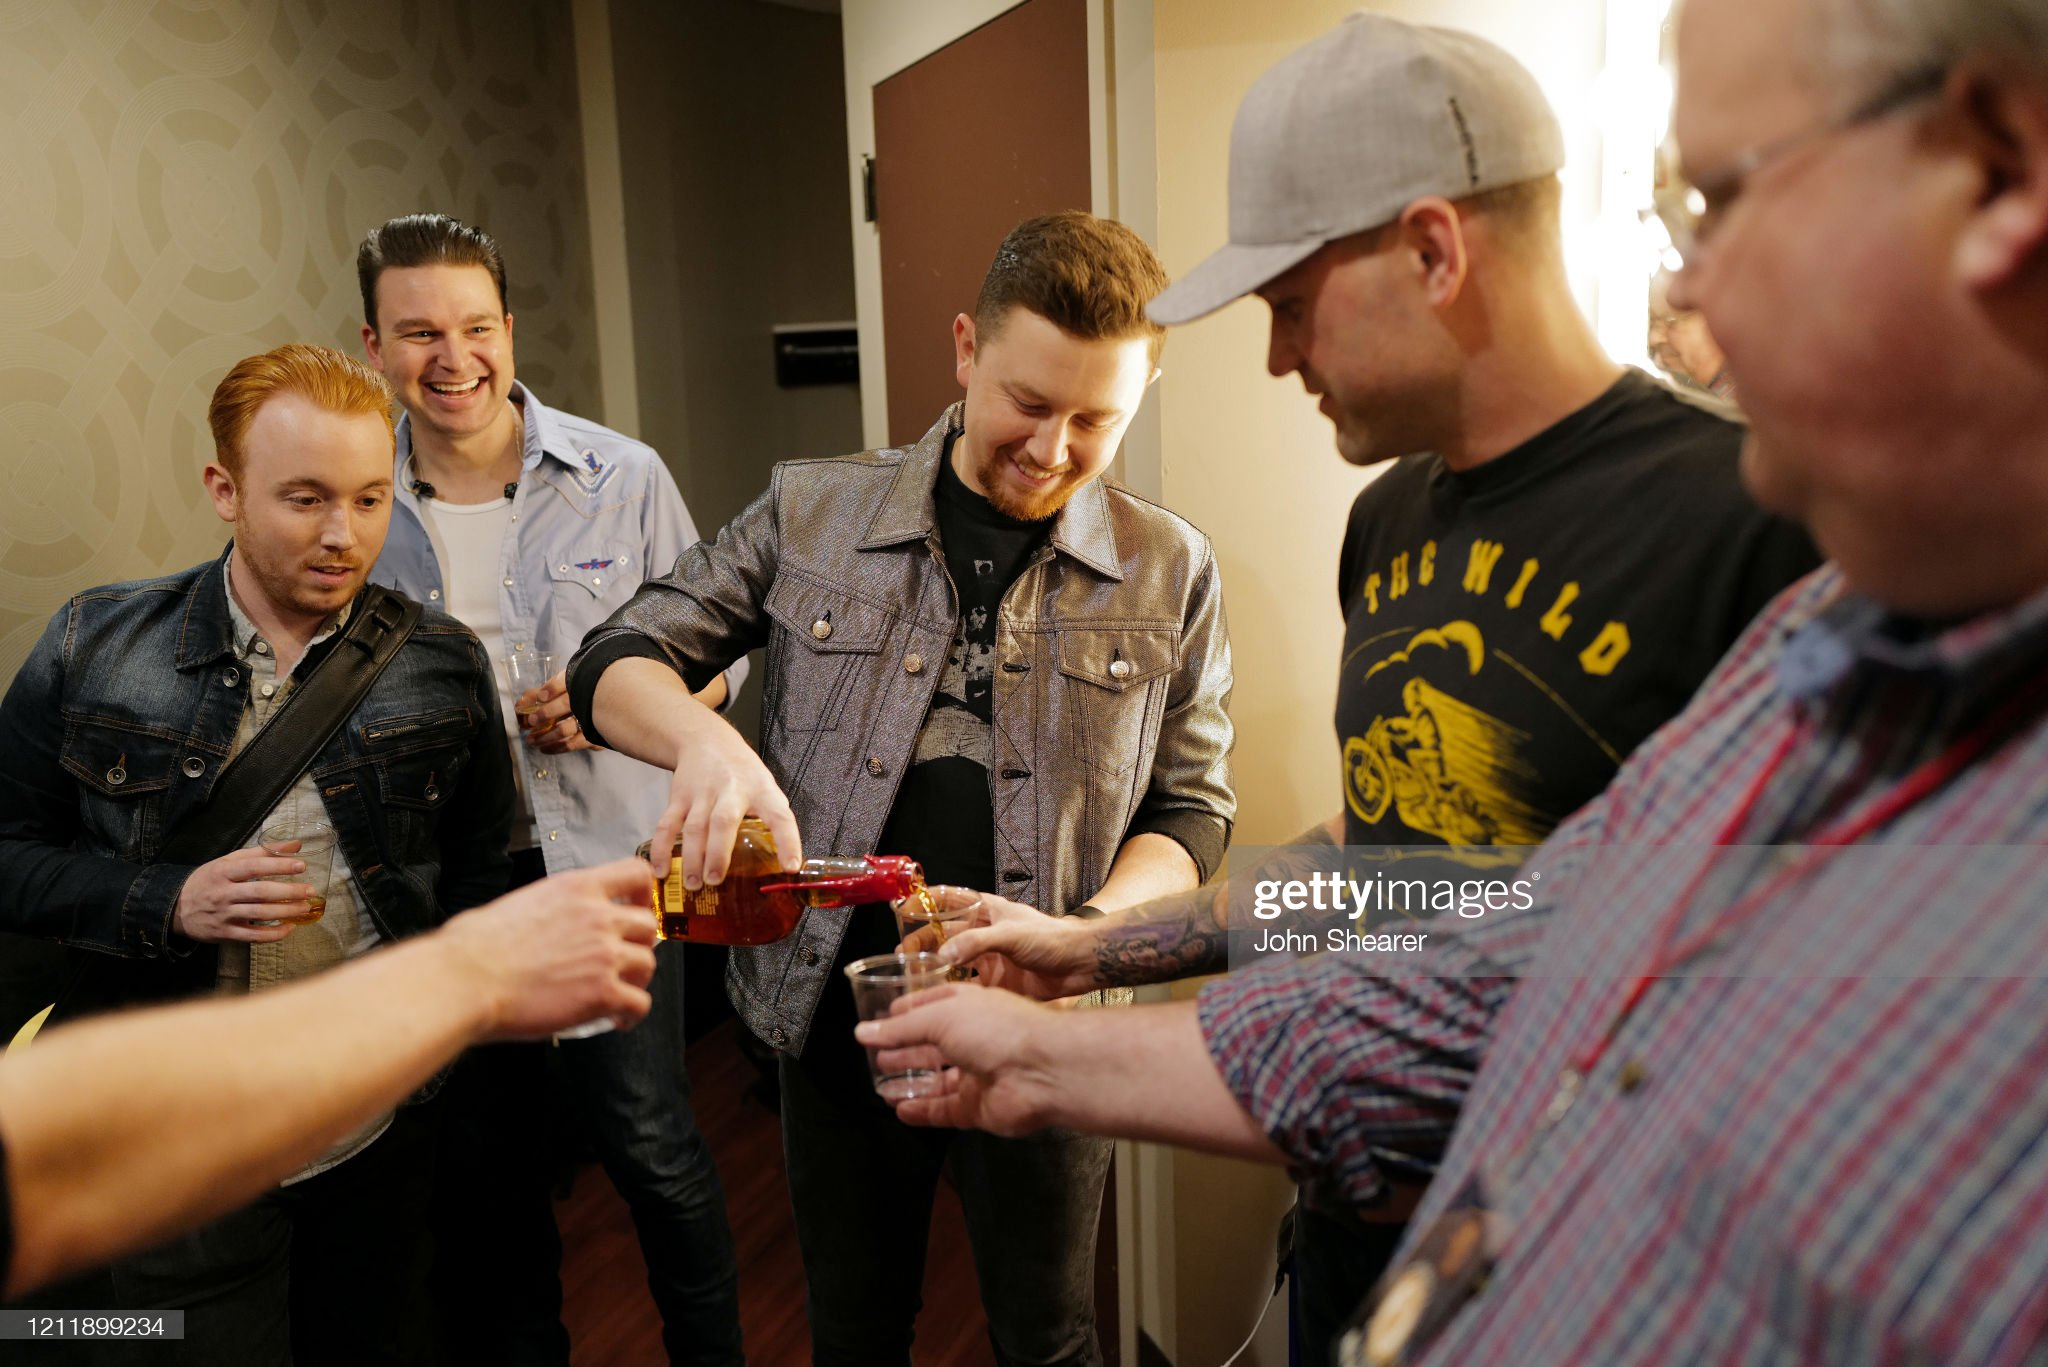 scotty-mccreery-and-band-members-seen-ba